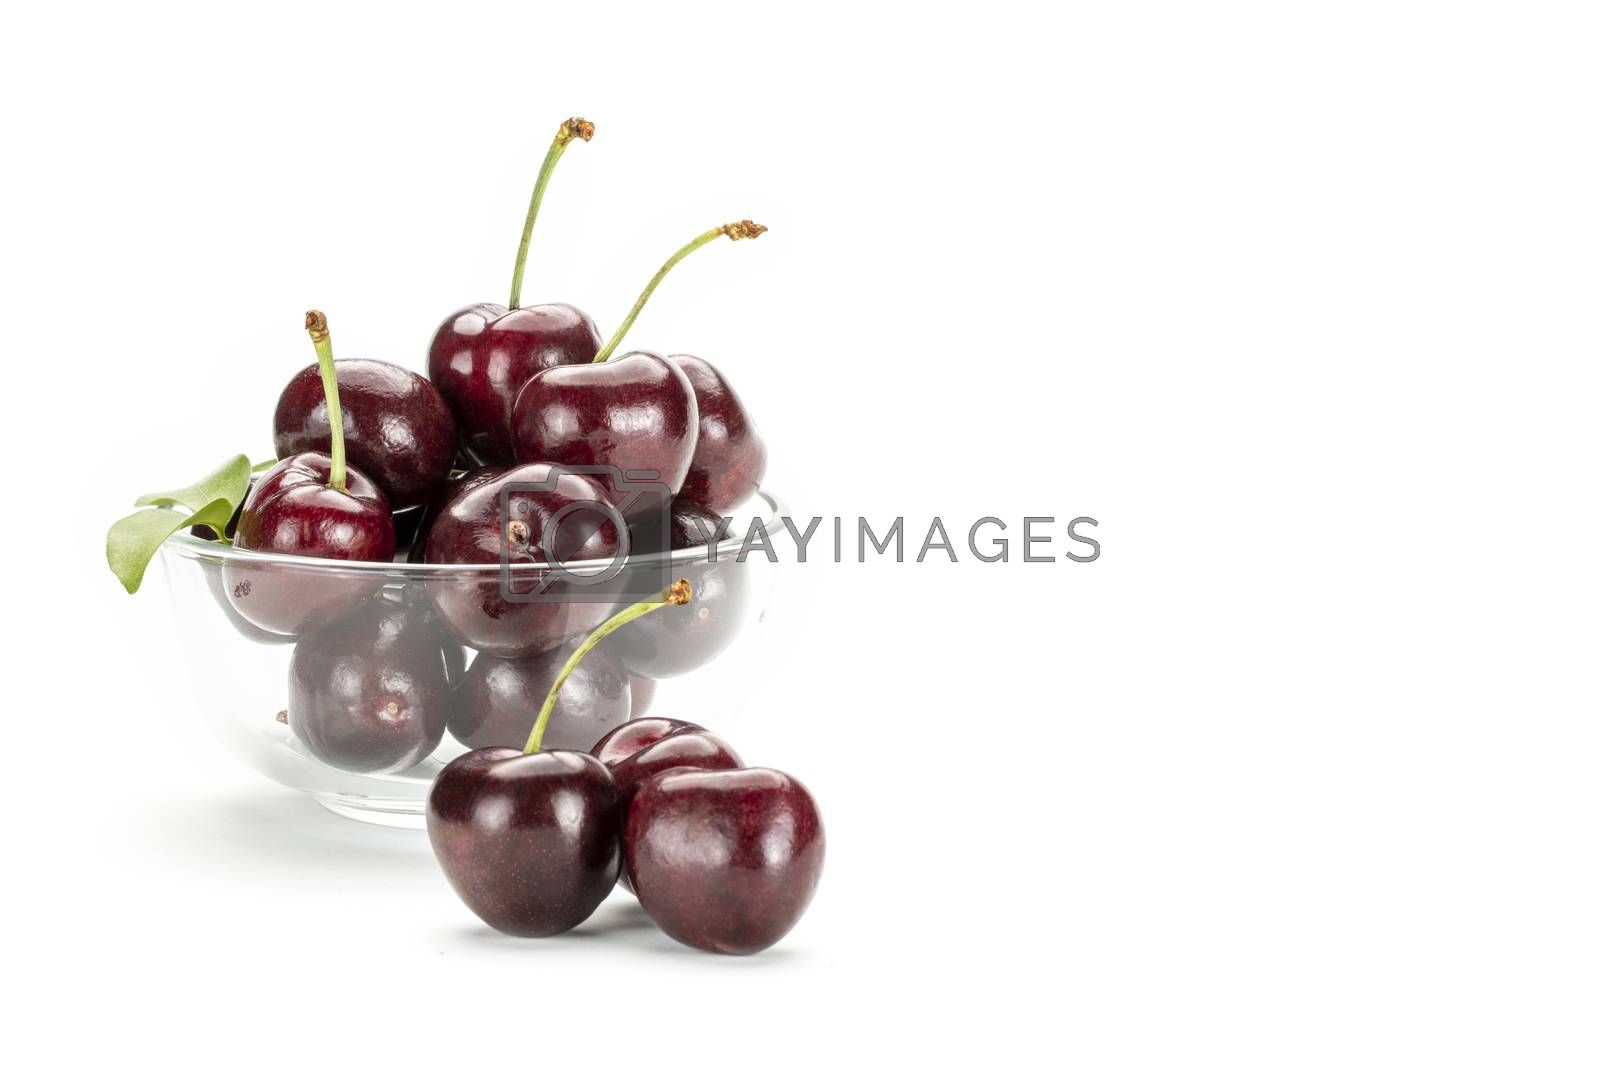 A bunch of ripe red cherries in a clear glass cup. Isolated on white background.